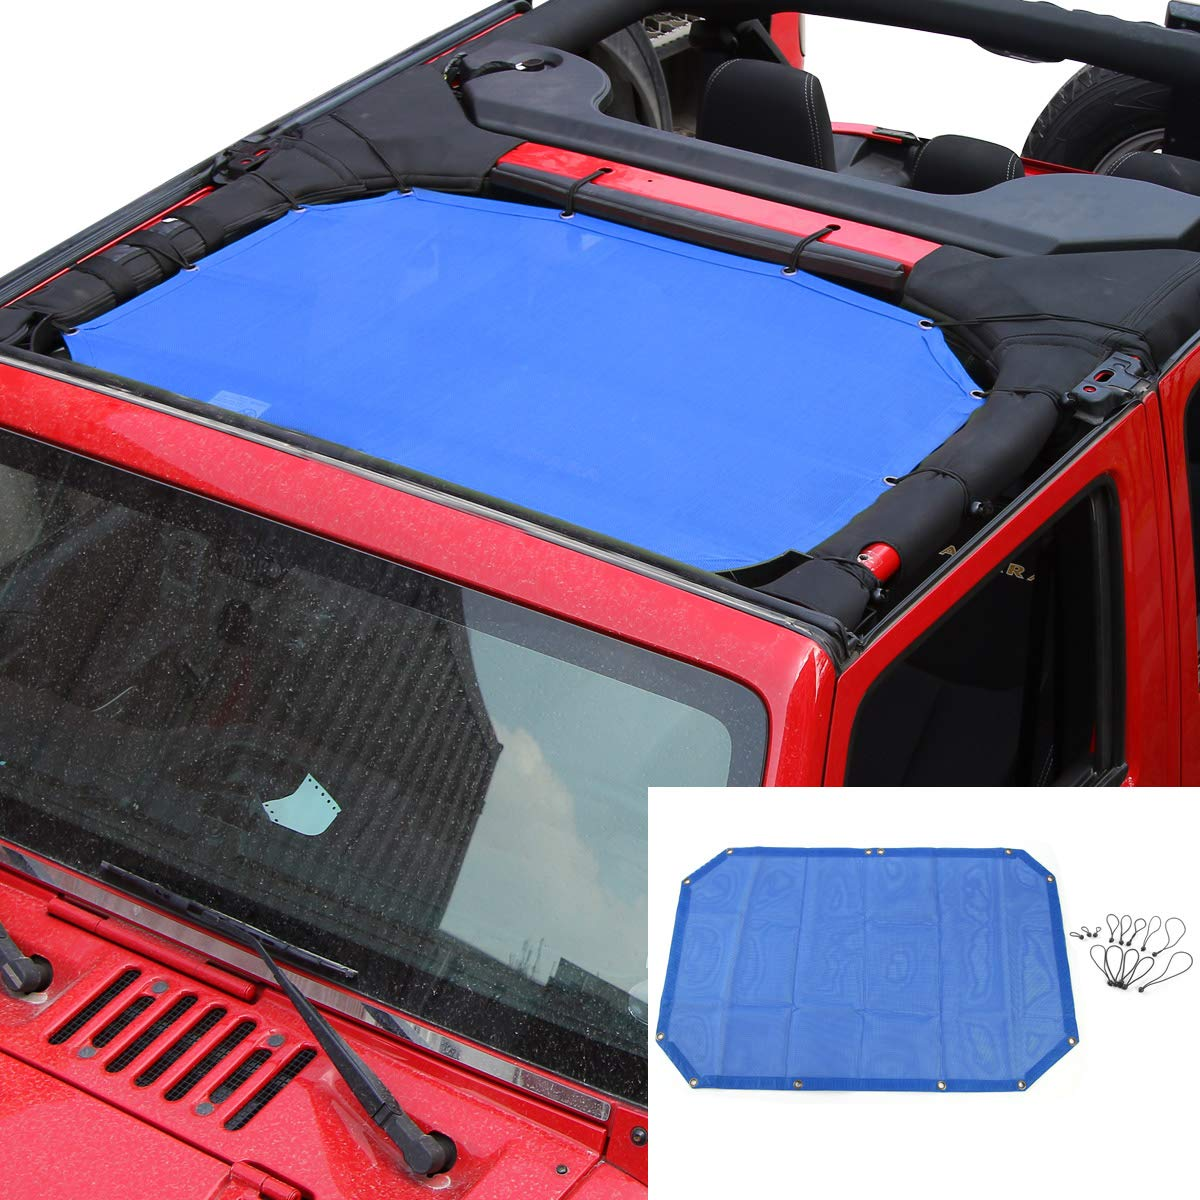 SunShade Top Cover Provides UV Sun Protection for Jeep Wrangler JK JKU 2007-2017 (Blue 2 Doors)